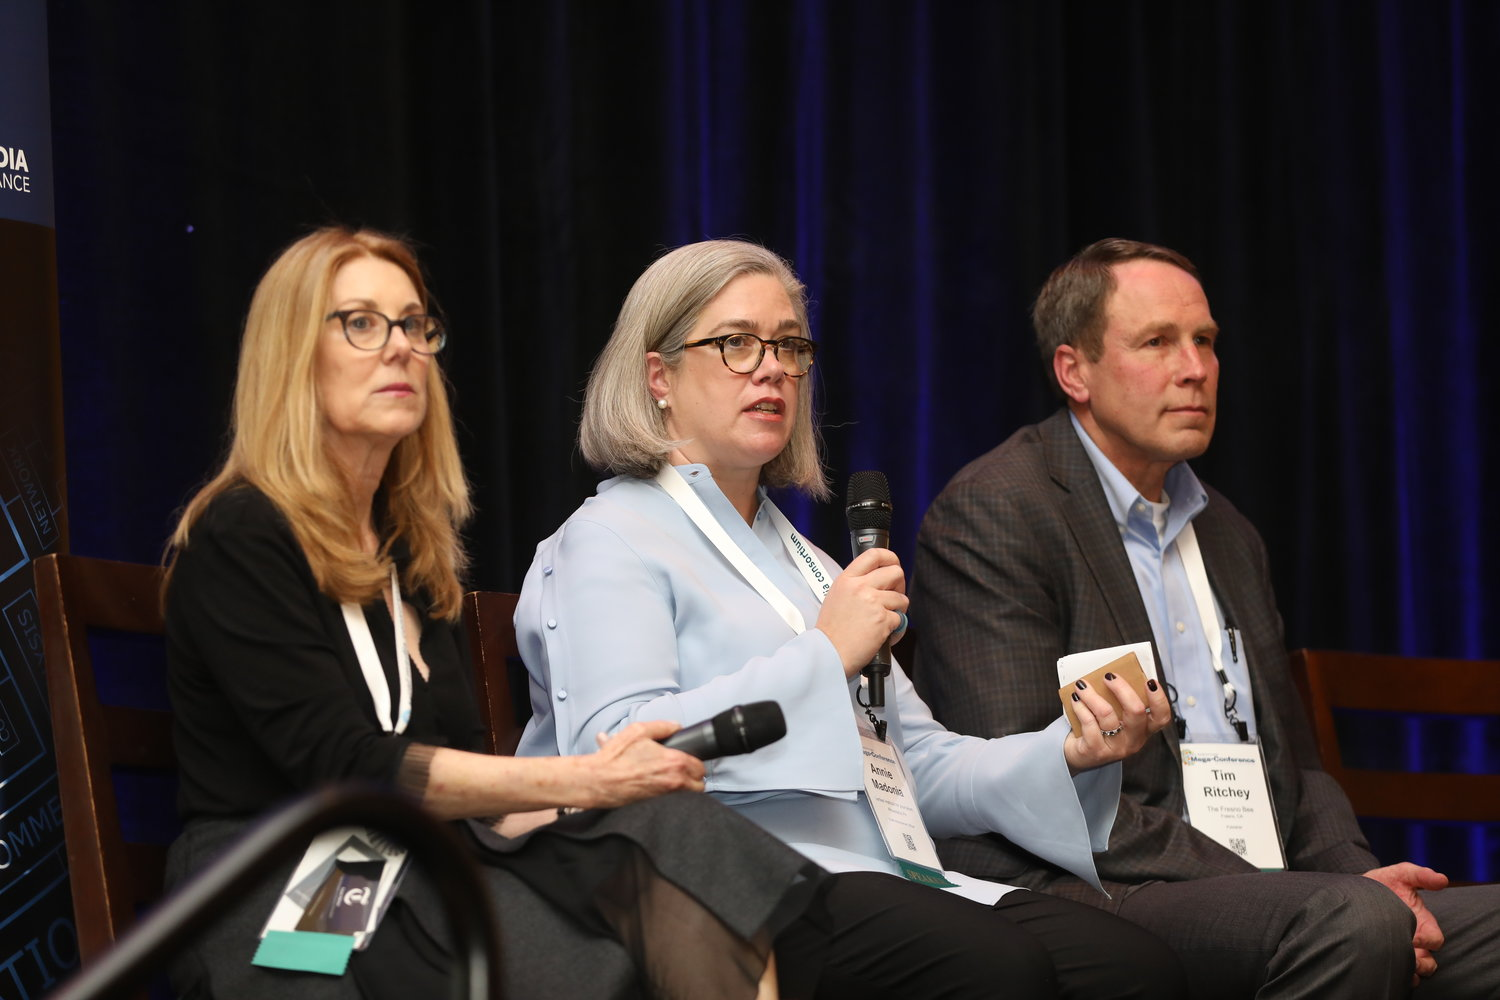 "Fraser Nelson, Annie Madonia and Tim Ritchey on ""Funding Outside the Box"" at the 2020 Mega-Conference. (Photo by Bob Booth)"